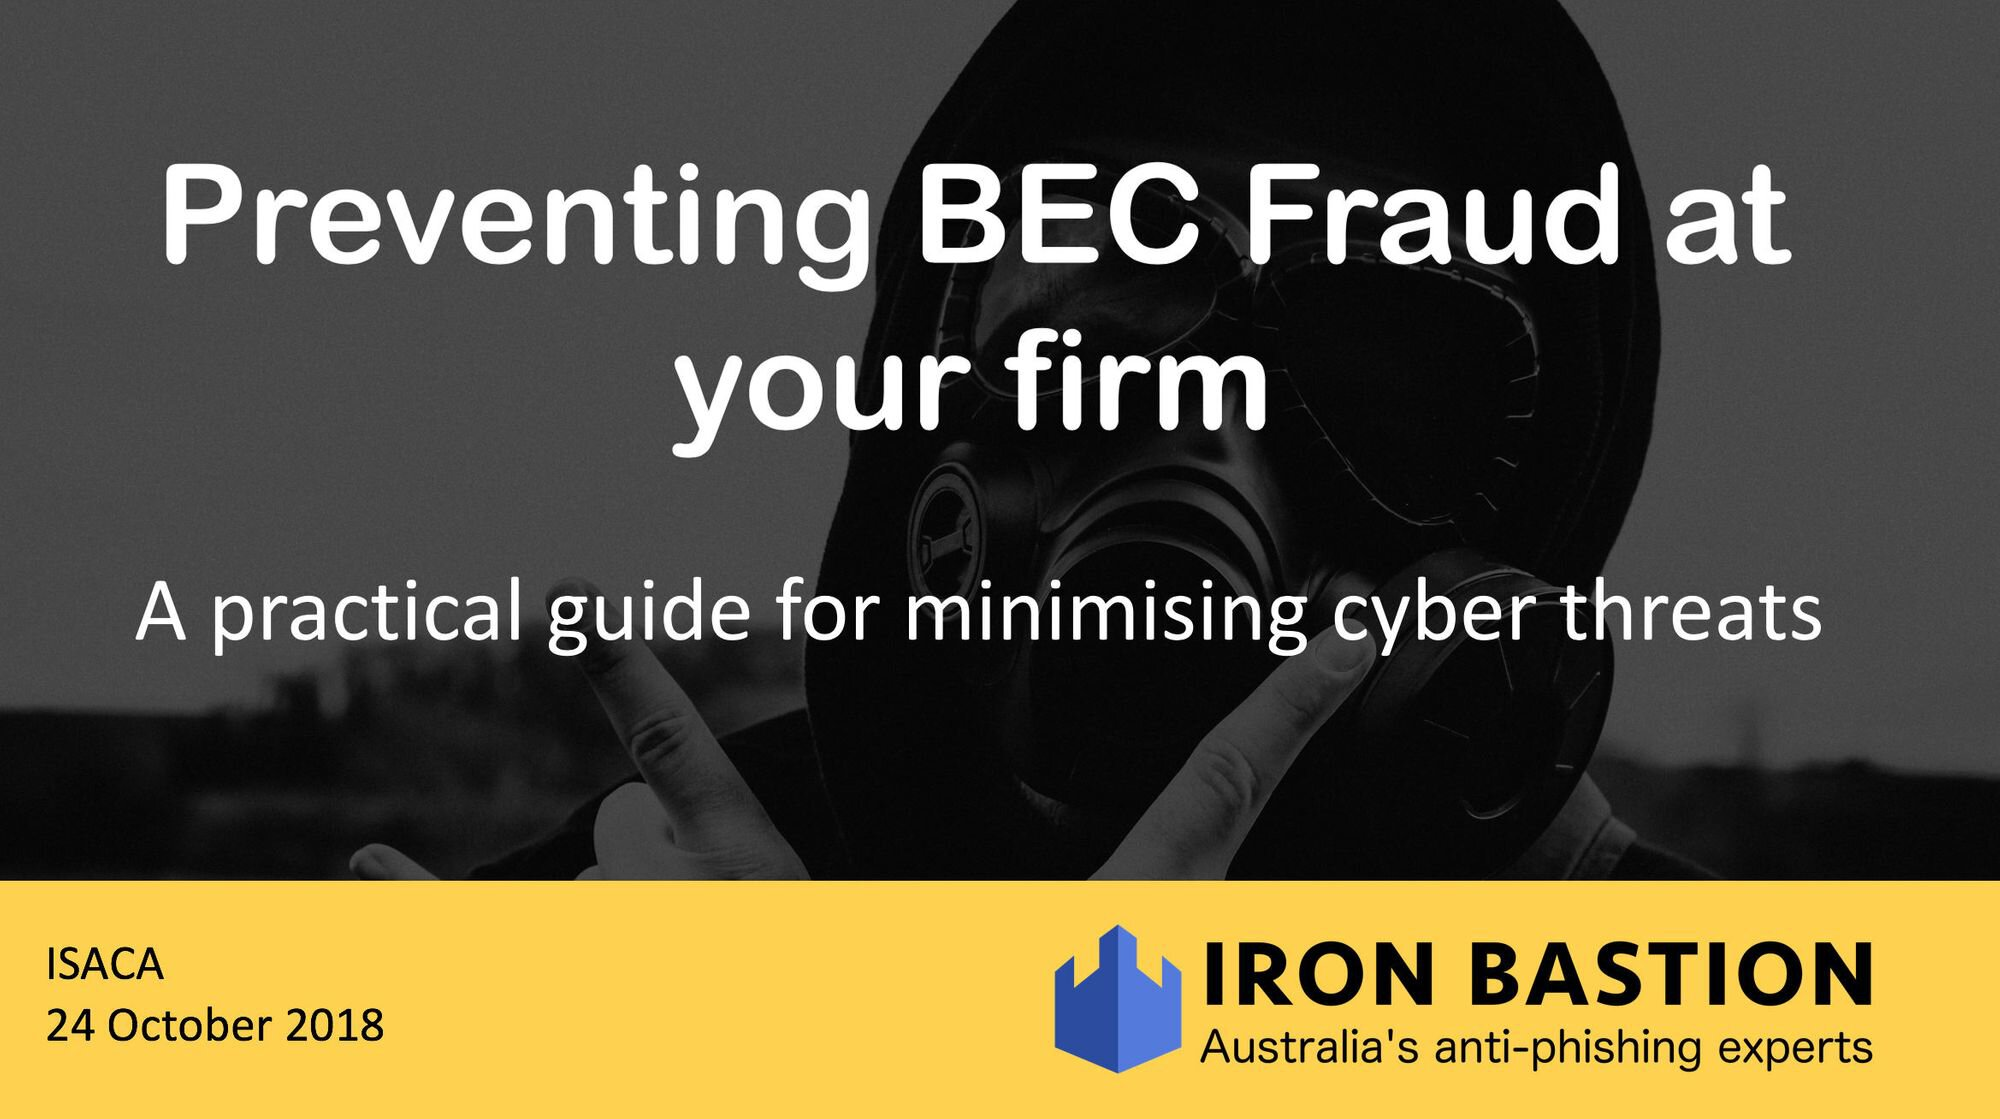 Preventing BEC Fraud at your firm